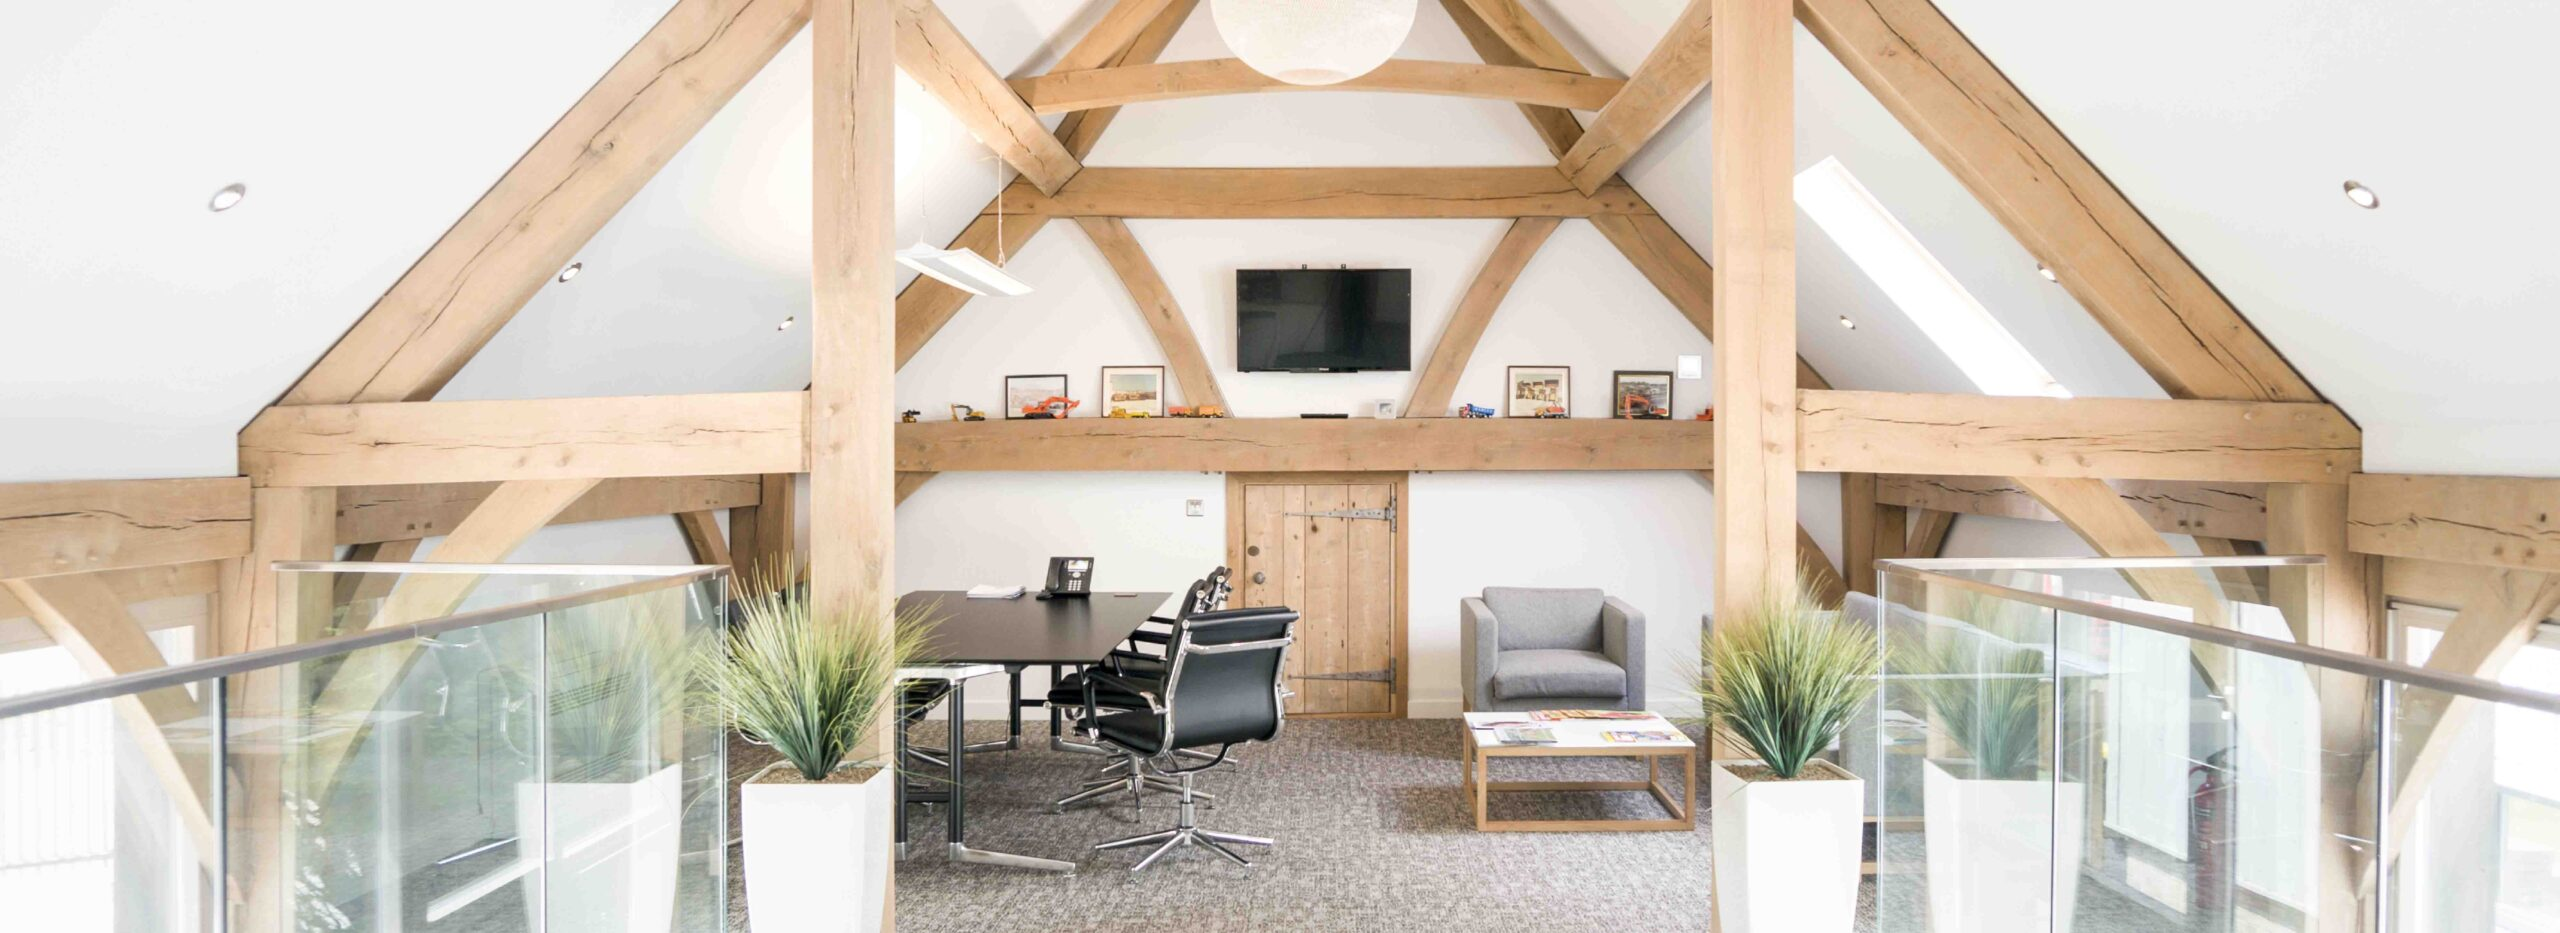 Oak frame offices with desk and chair and vaulted ceiling